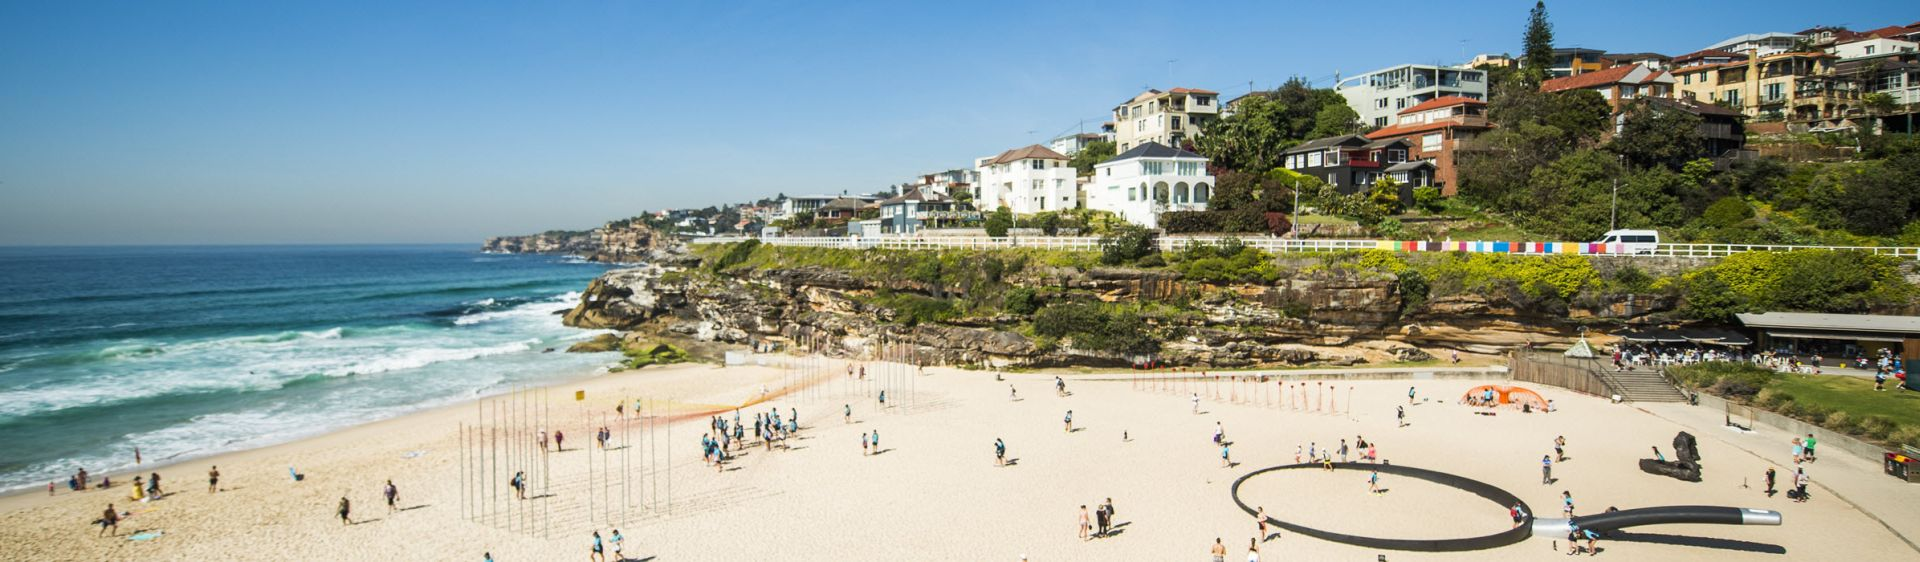 Sculpture by the Sea 2014, Bondi - Tamarama